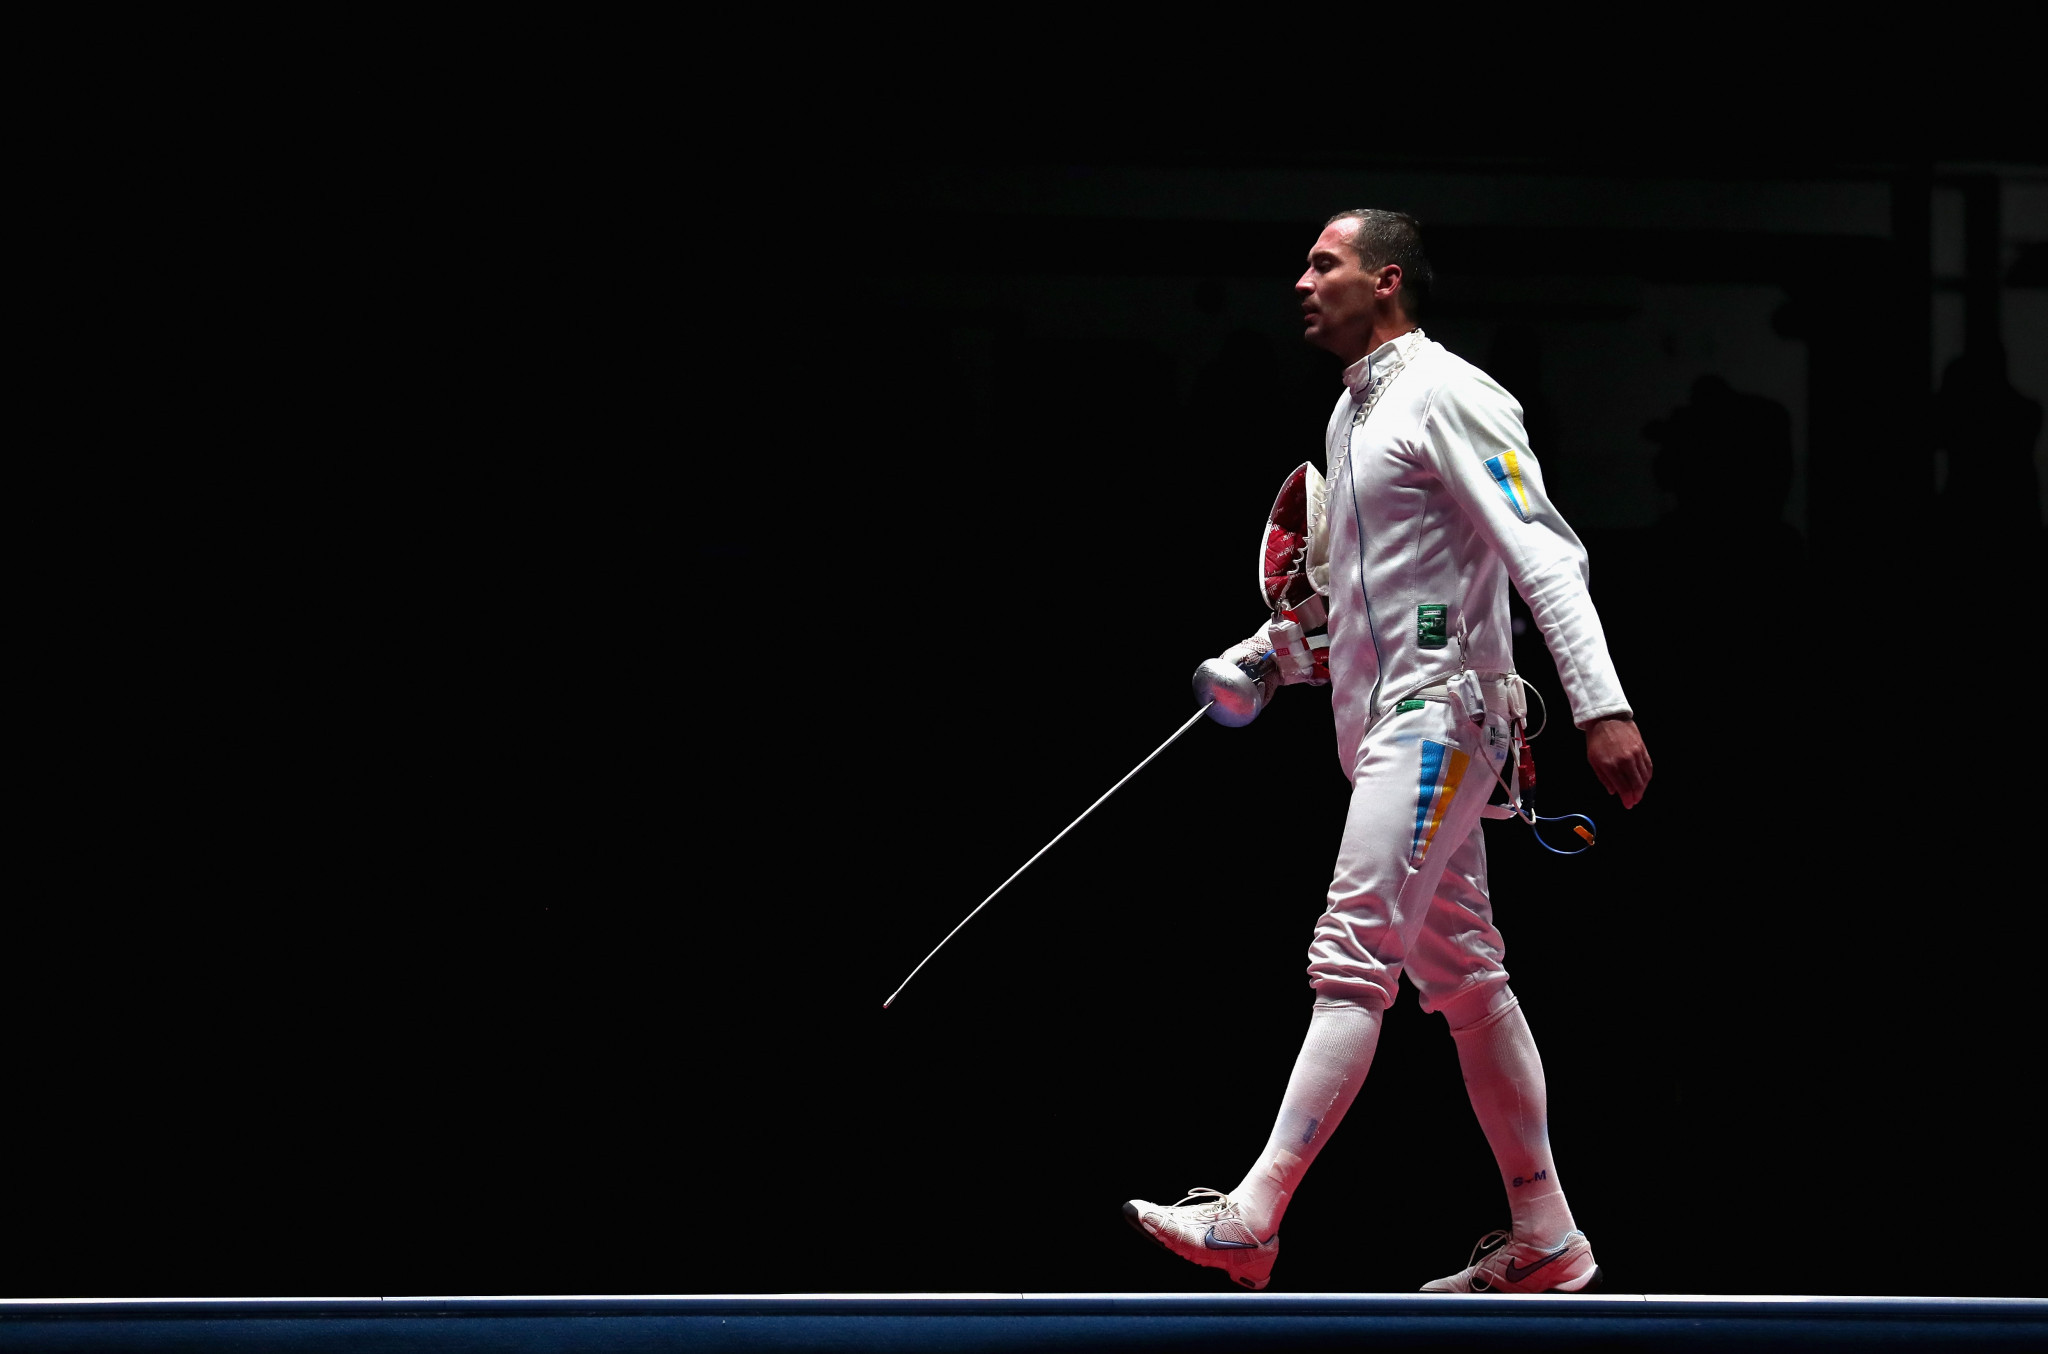 Quartet of FIE World Cups set to begin with leading épée and sabre athletes seeking success